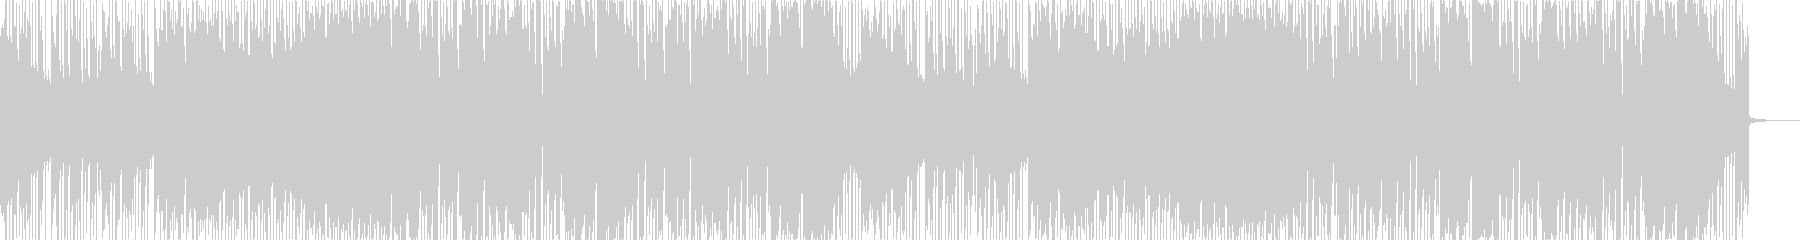 Happy and cute Future Bass's unreproduced waveform